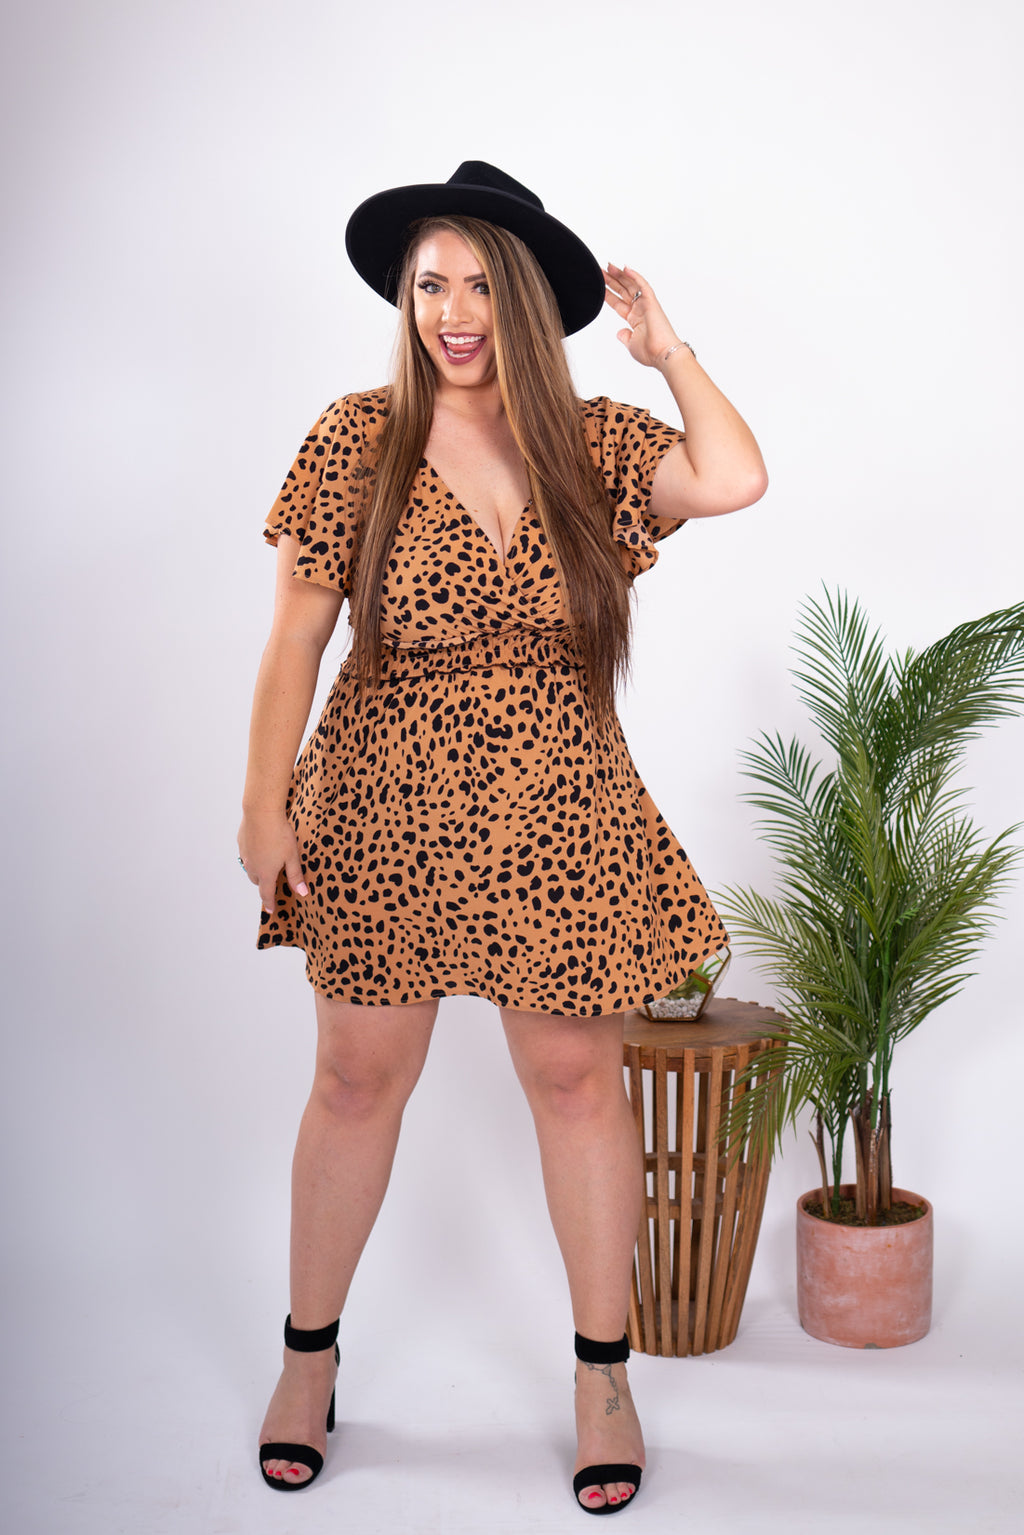 Flirty Leopard Dress Flutter Sleeves Elastic Ruffle Waist